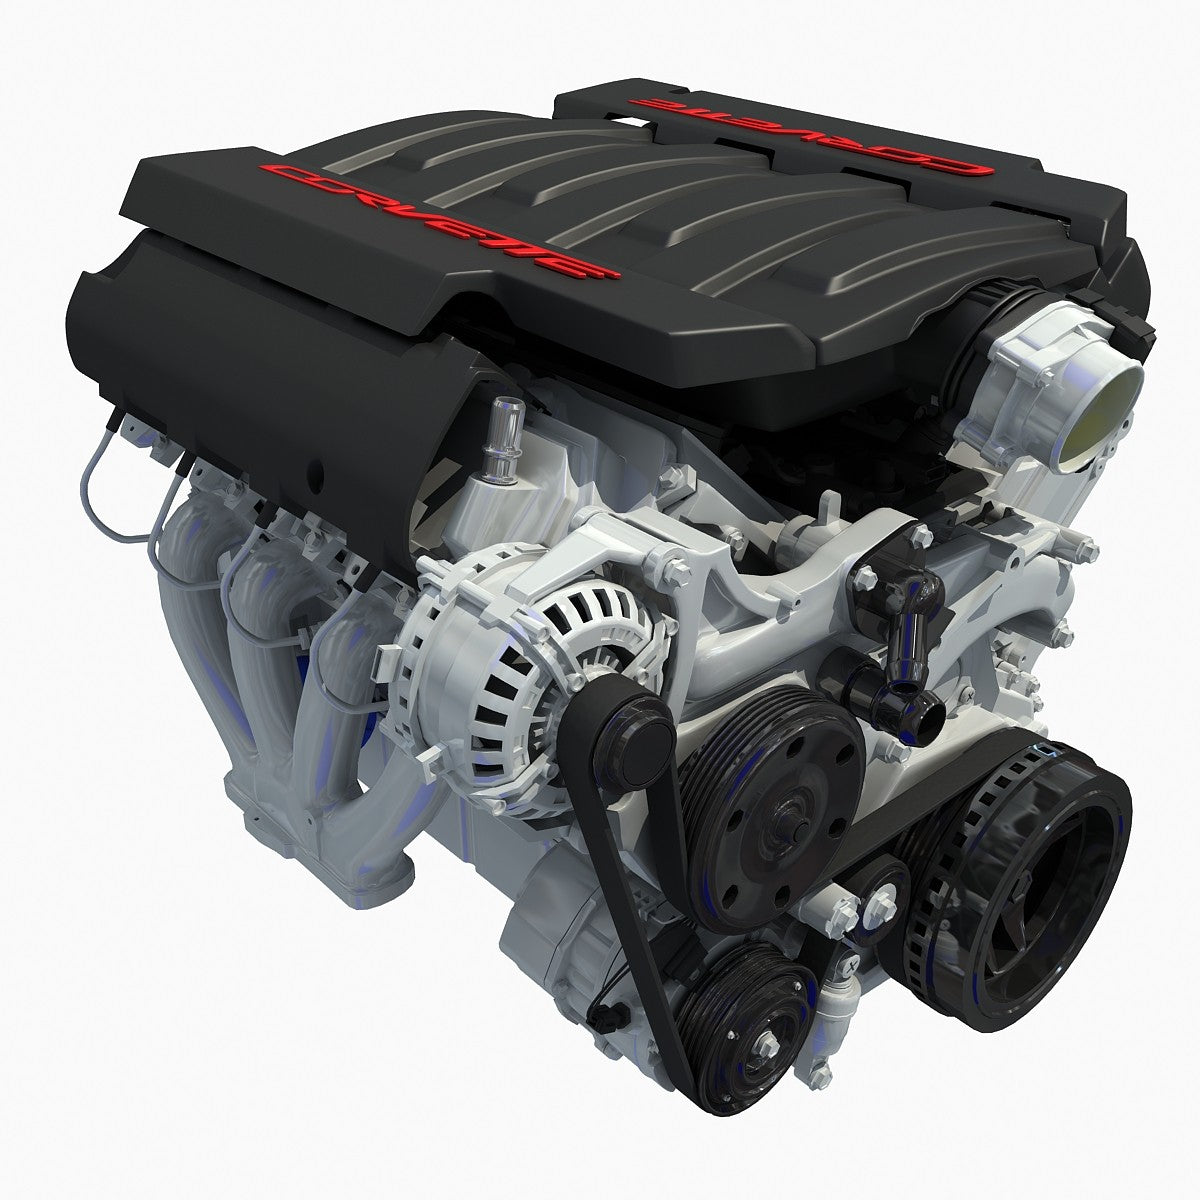 3D Models Chevrolet Corvette V8 Engine